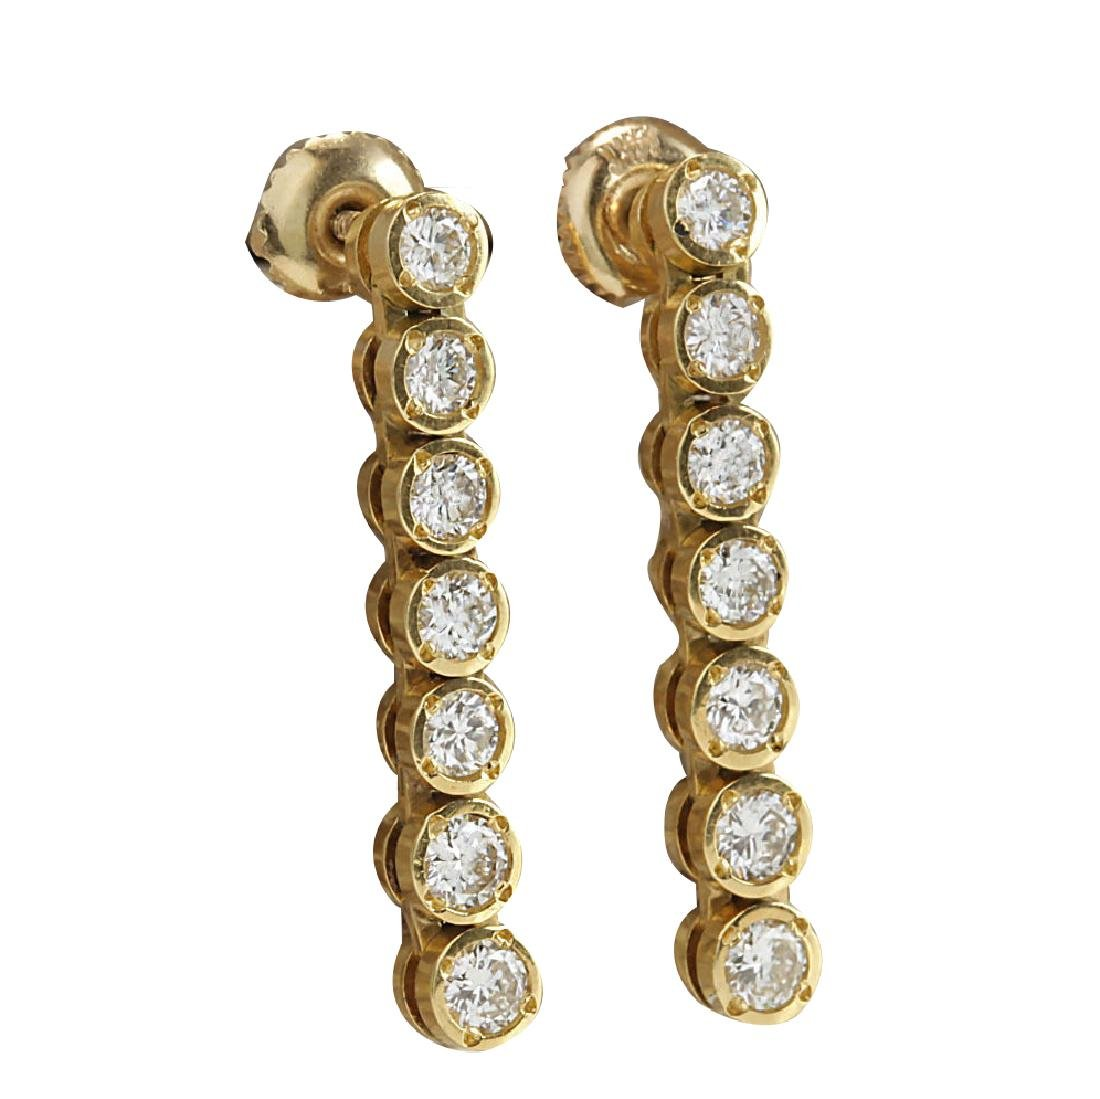 1.26CTW Natural Diamond Earrings 18K Solid Yellow Gold - 2